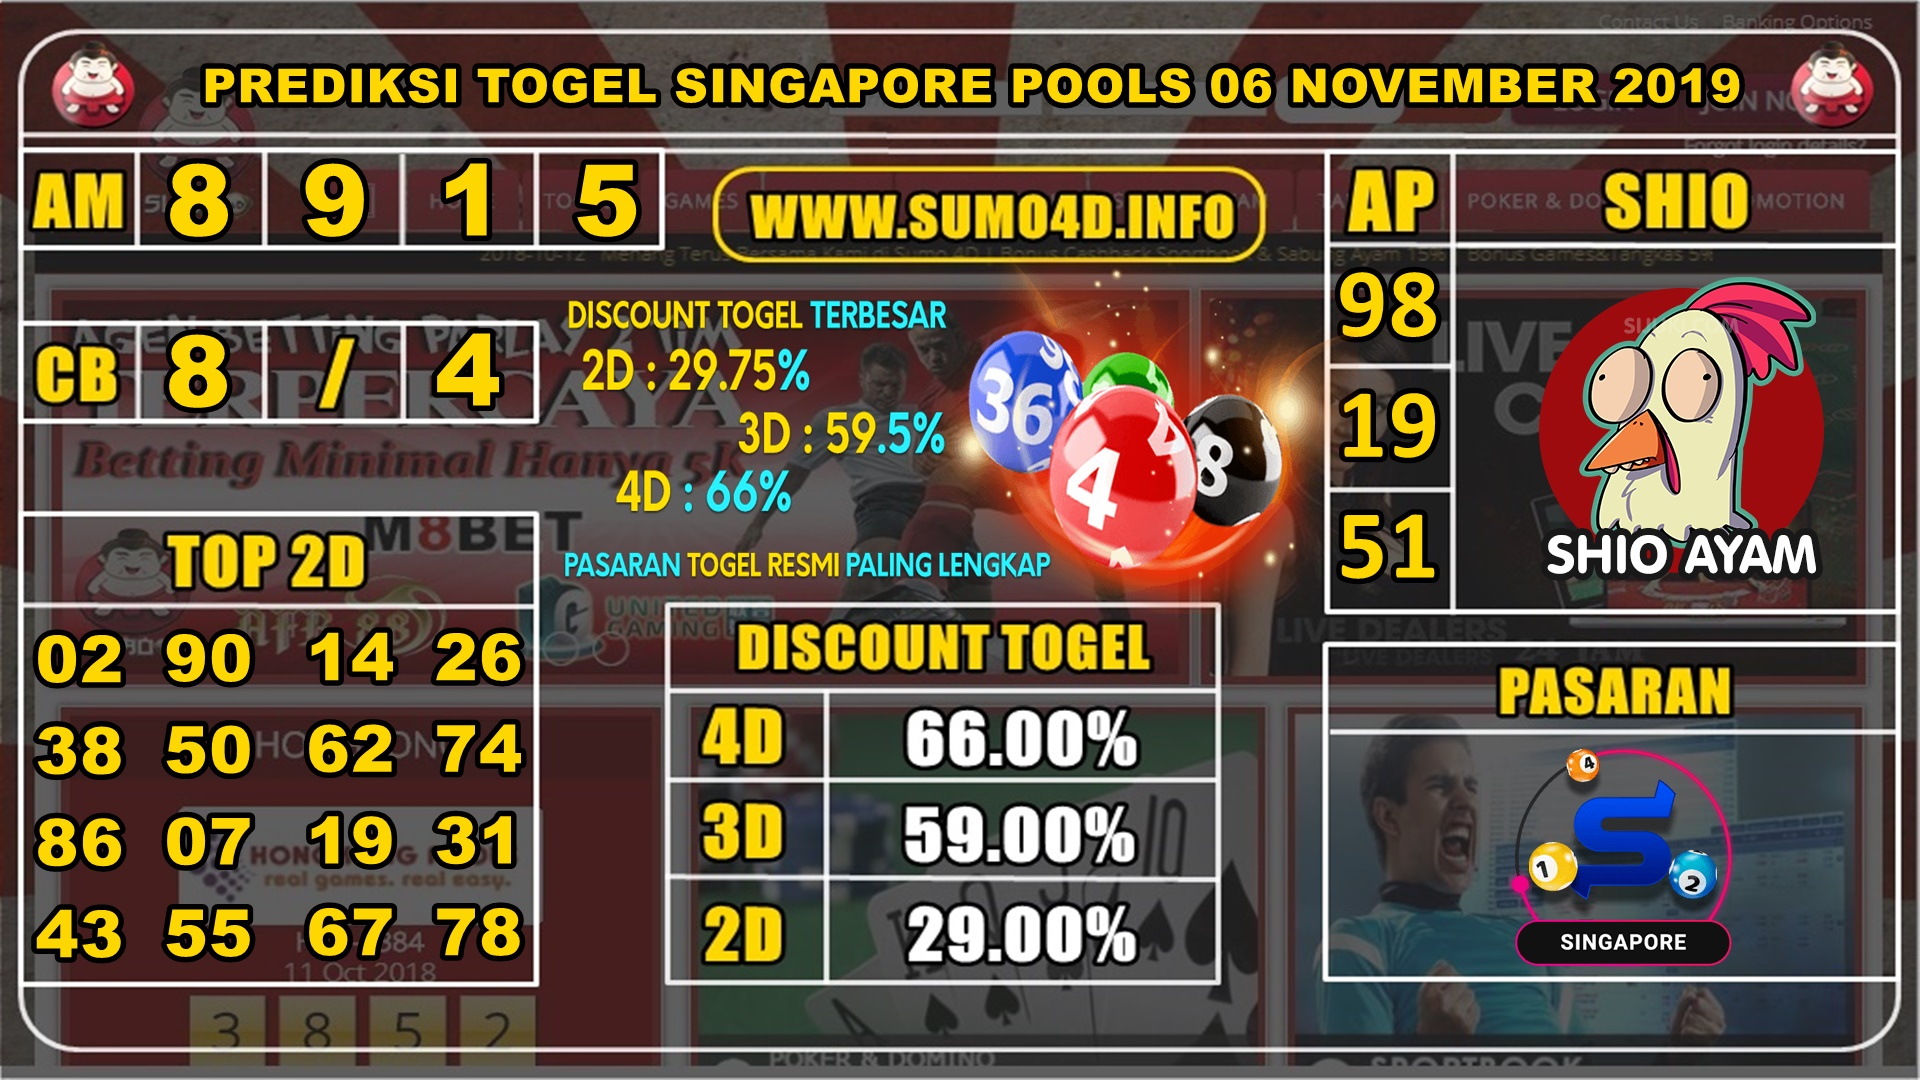 PREDIKSI TOGEL SINGAPORE POOLS 06 NOVEMBER 2019